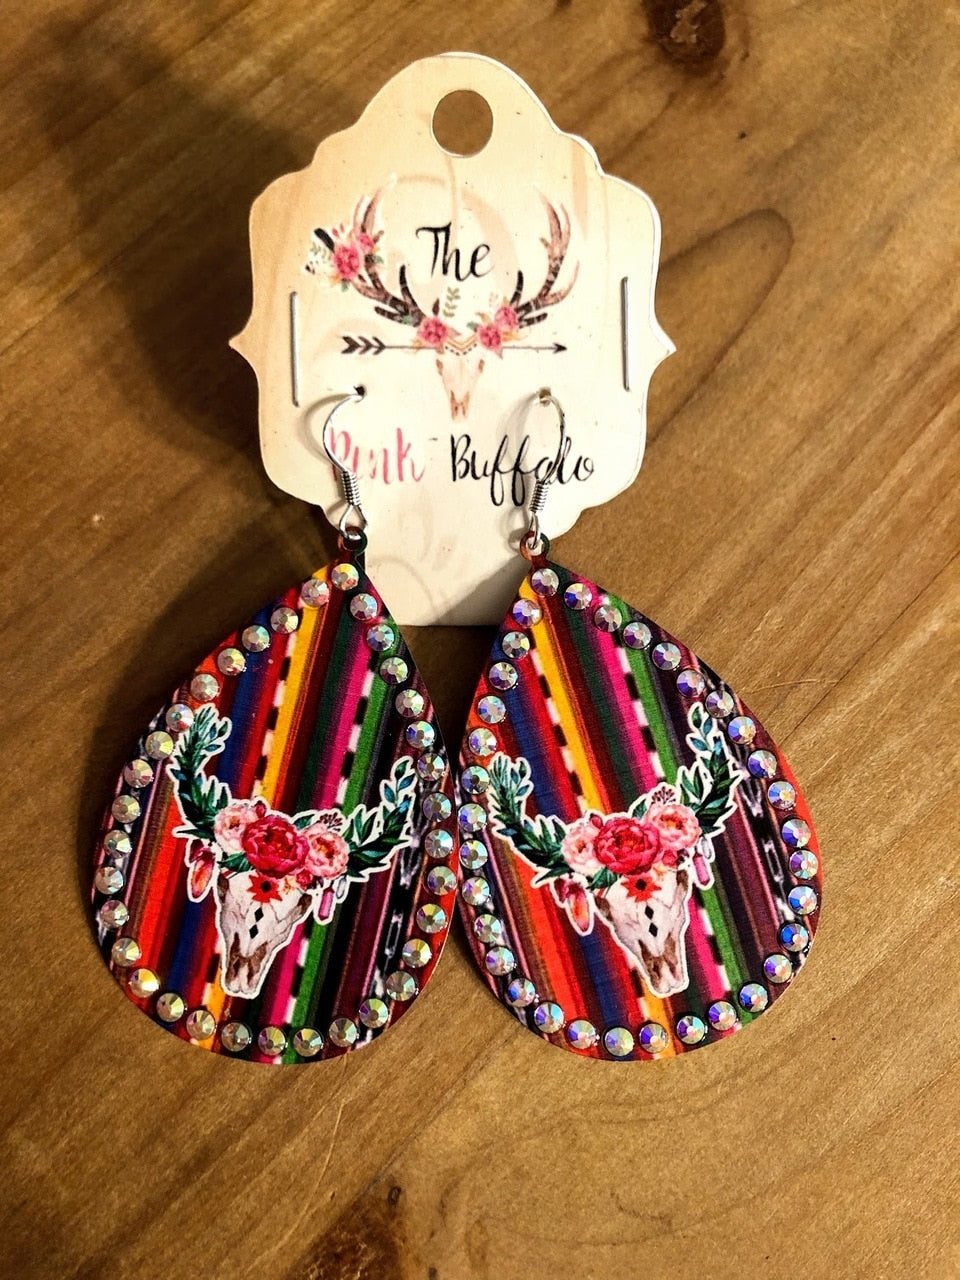 Cowskull Floral Serape Earrings - The Pink Buffalo,LLC